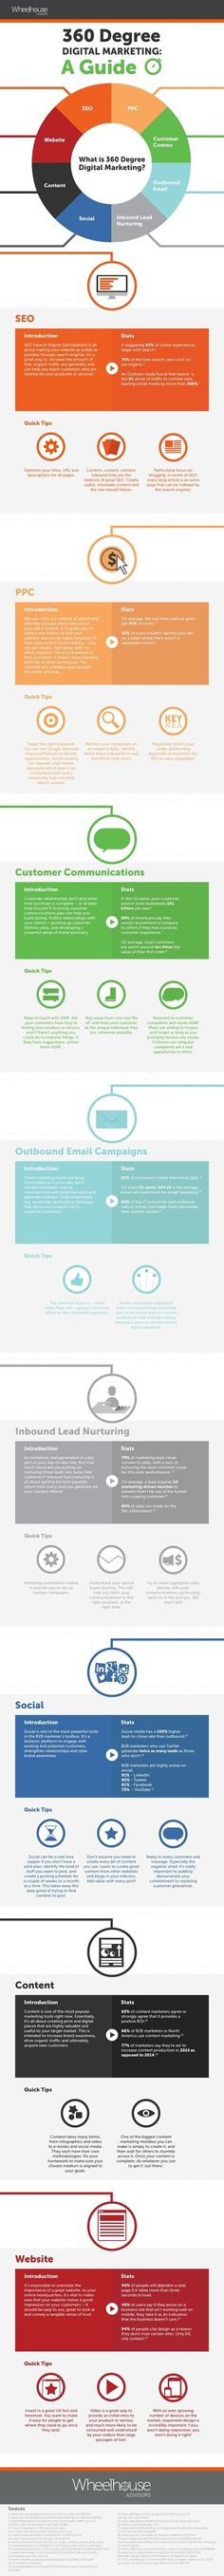 Marketing Strategy - Tips for Creating a 360-Degree Approach to Your Digital Marketing [Infographic] : MarketingProfs Article Latest News & Trends in #digitalmarketing 2015 | http://webworksagency.com